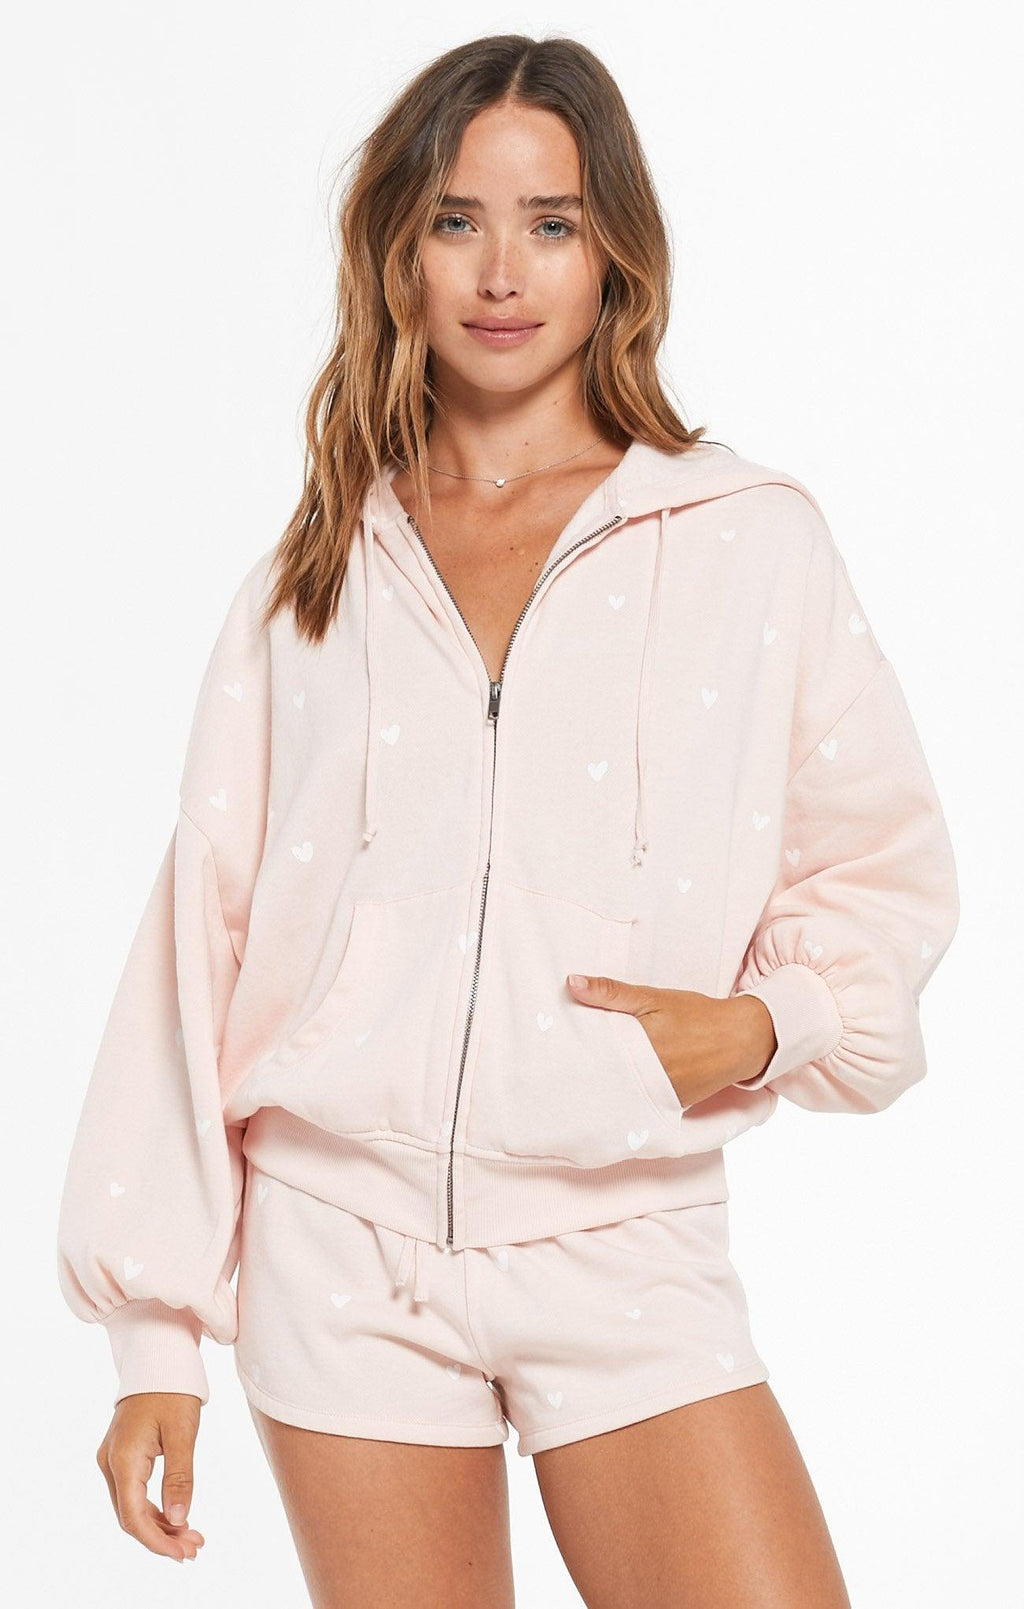 Z supply hearts full fleece hoodie - rose quartz